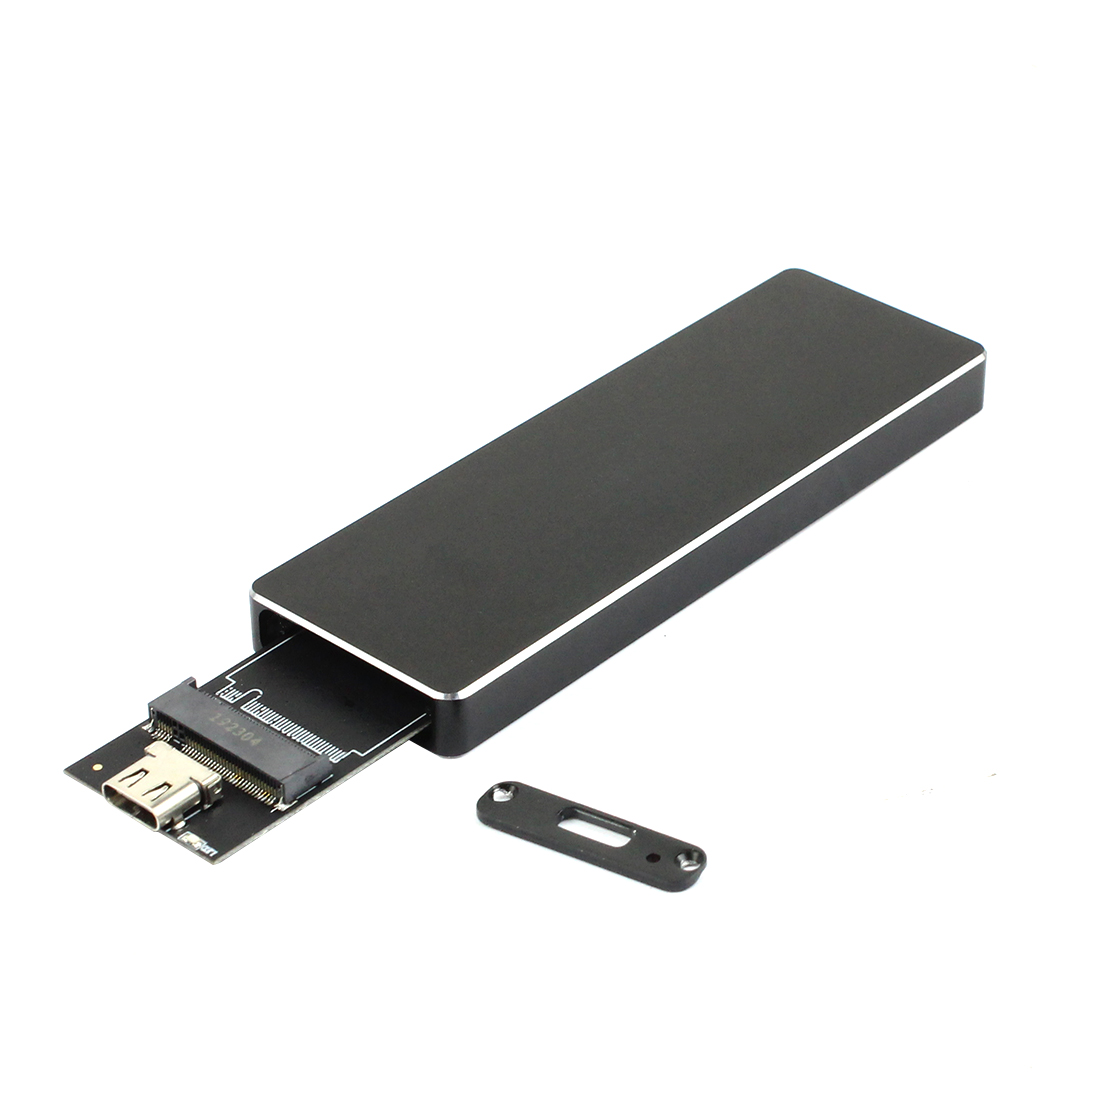 NVME SSD Enclosure PCI-E M.2 to USB C Type-C Adapter USB3.1 Gen2 10Gbps M2 PCIE Hard Disk External Drive Box w/ Heatsink